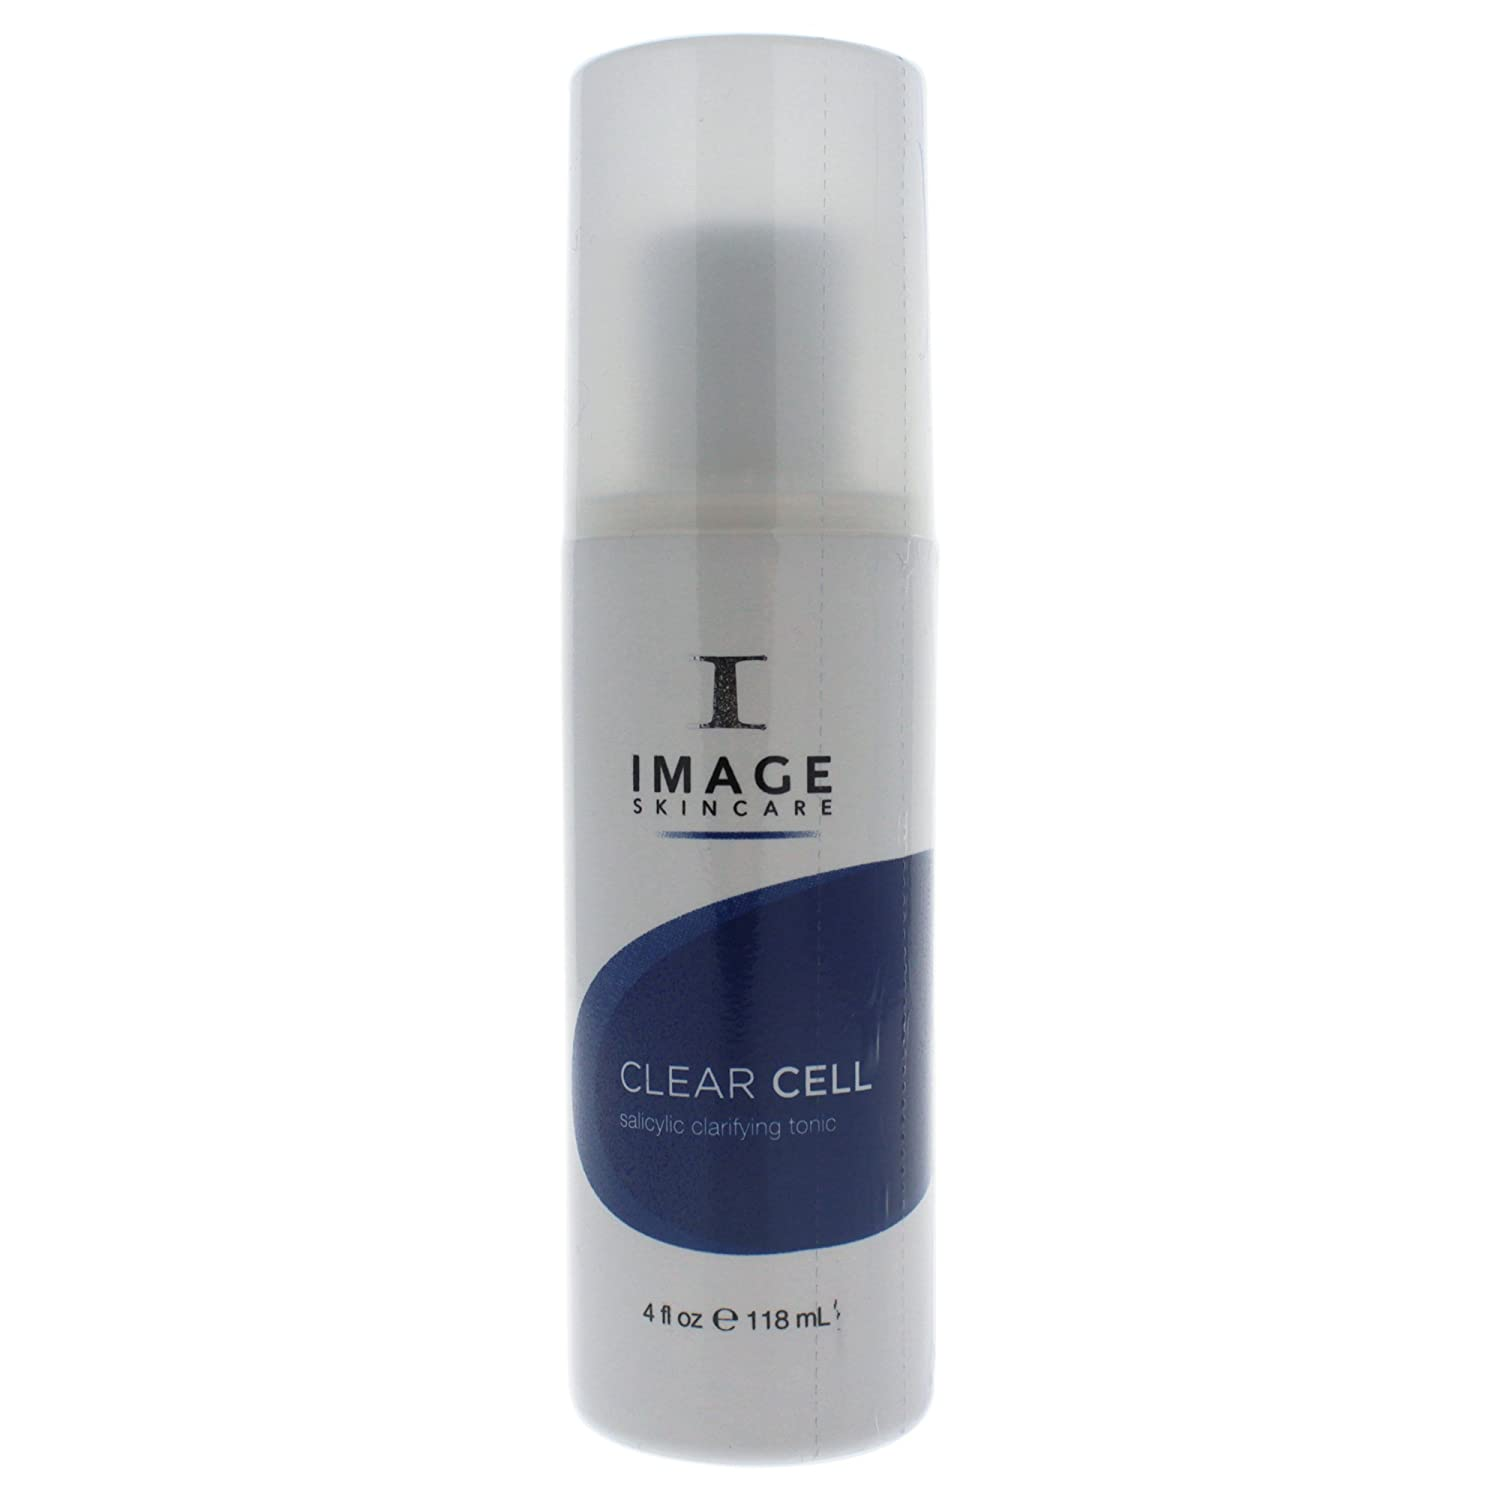 IMAGE Skincare Clear Cell Salicylic Clarifying Tonic